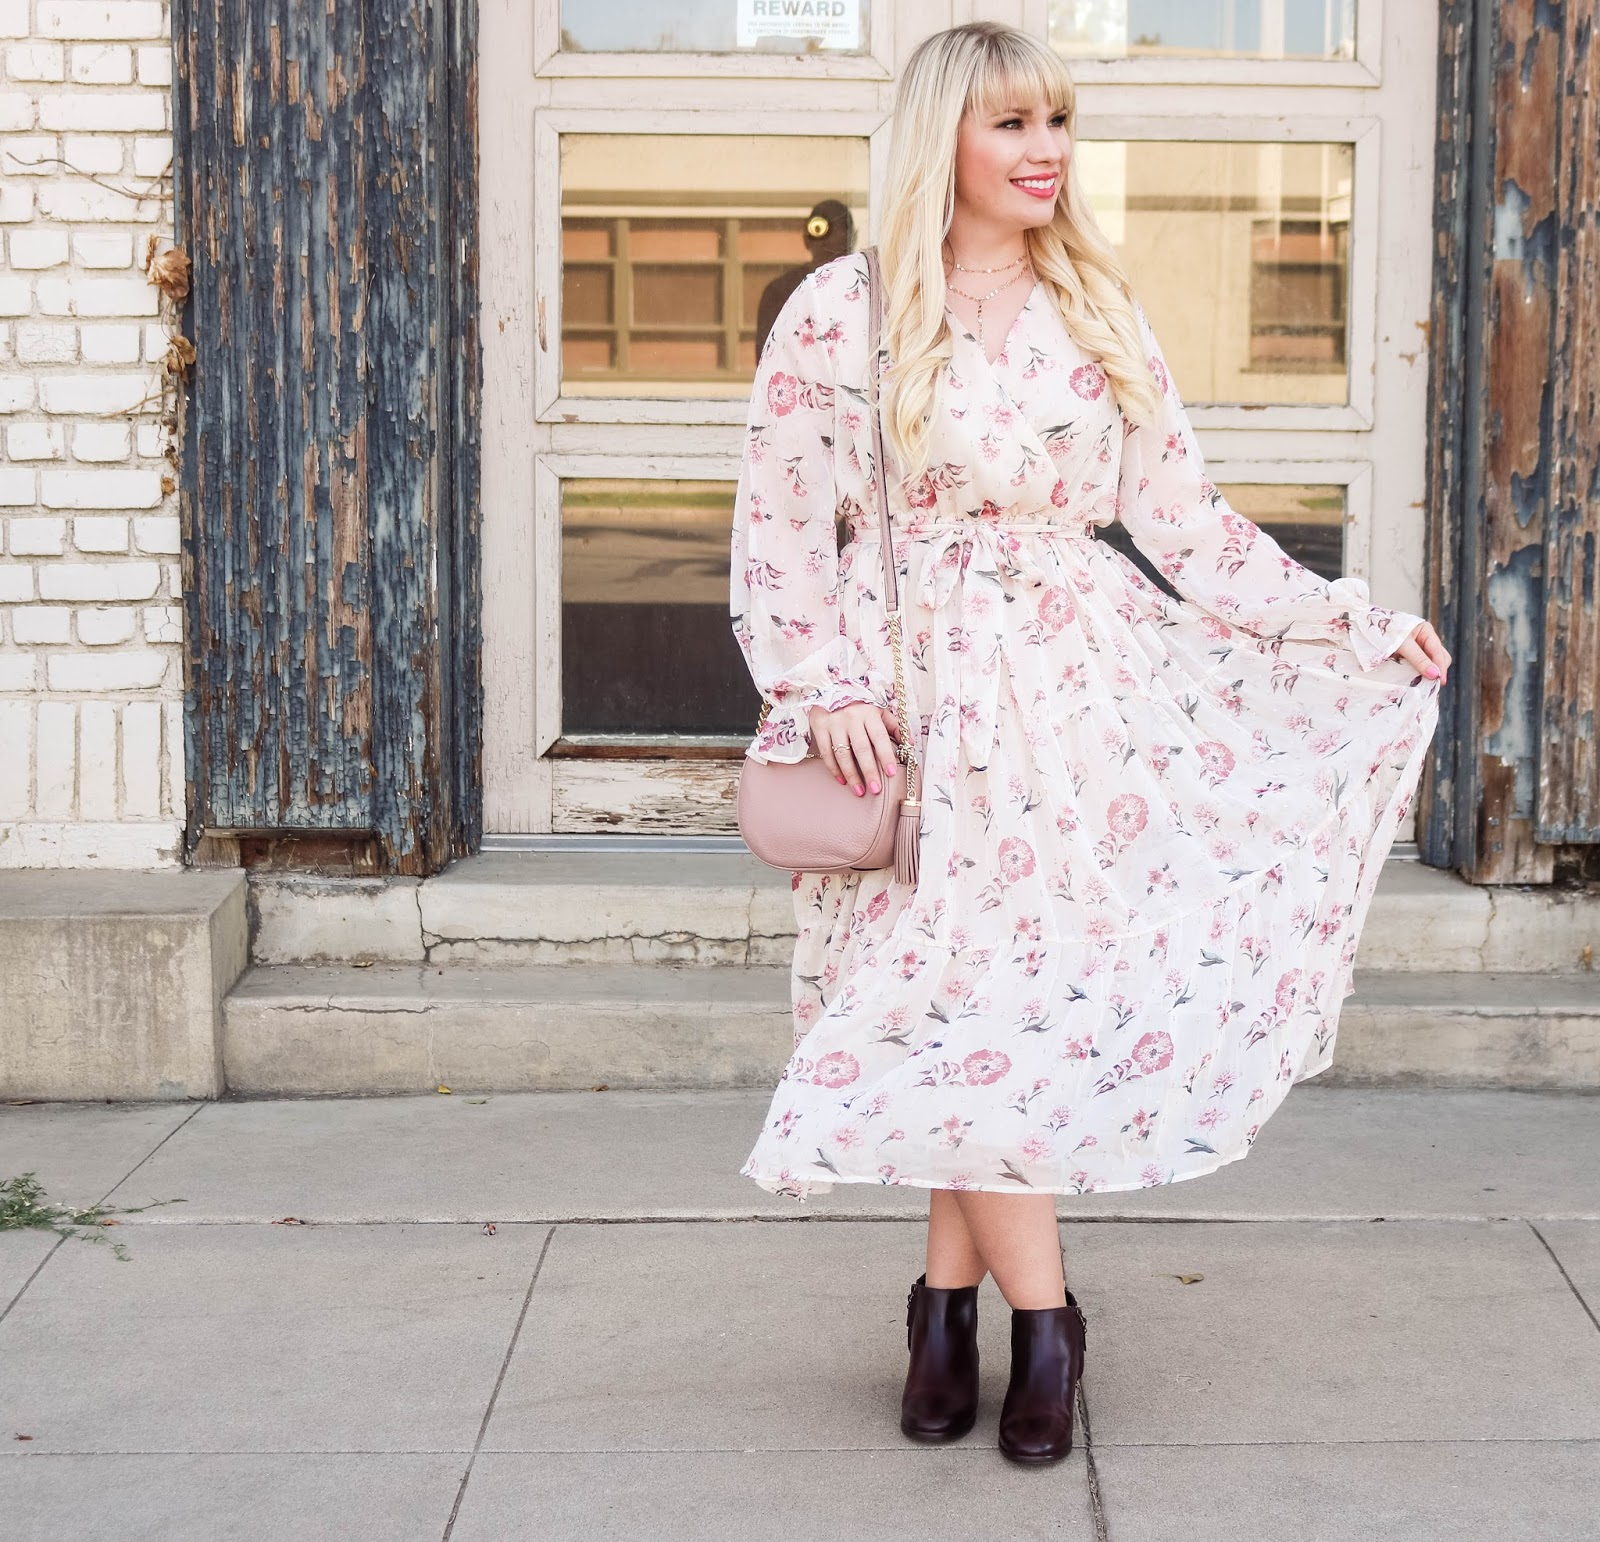 Floral Maxi Dress for Fall